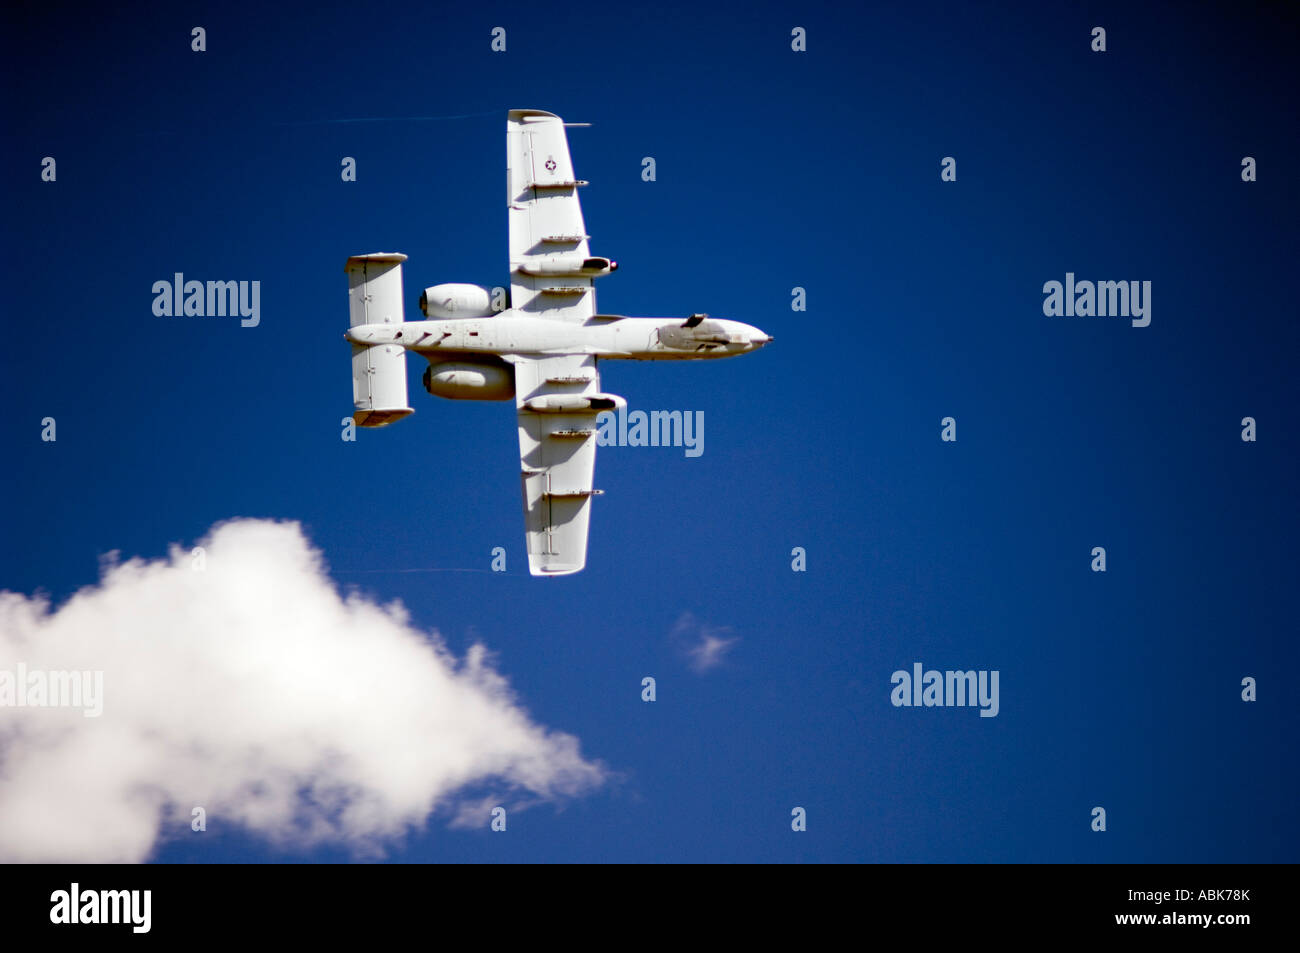 The US Air Force A 10 at the Sacramento Airshow in Californina - Stock Image